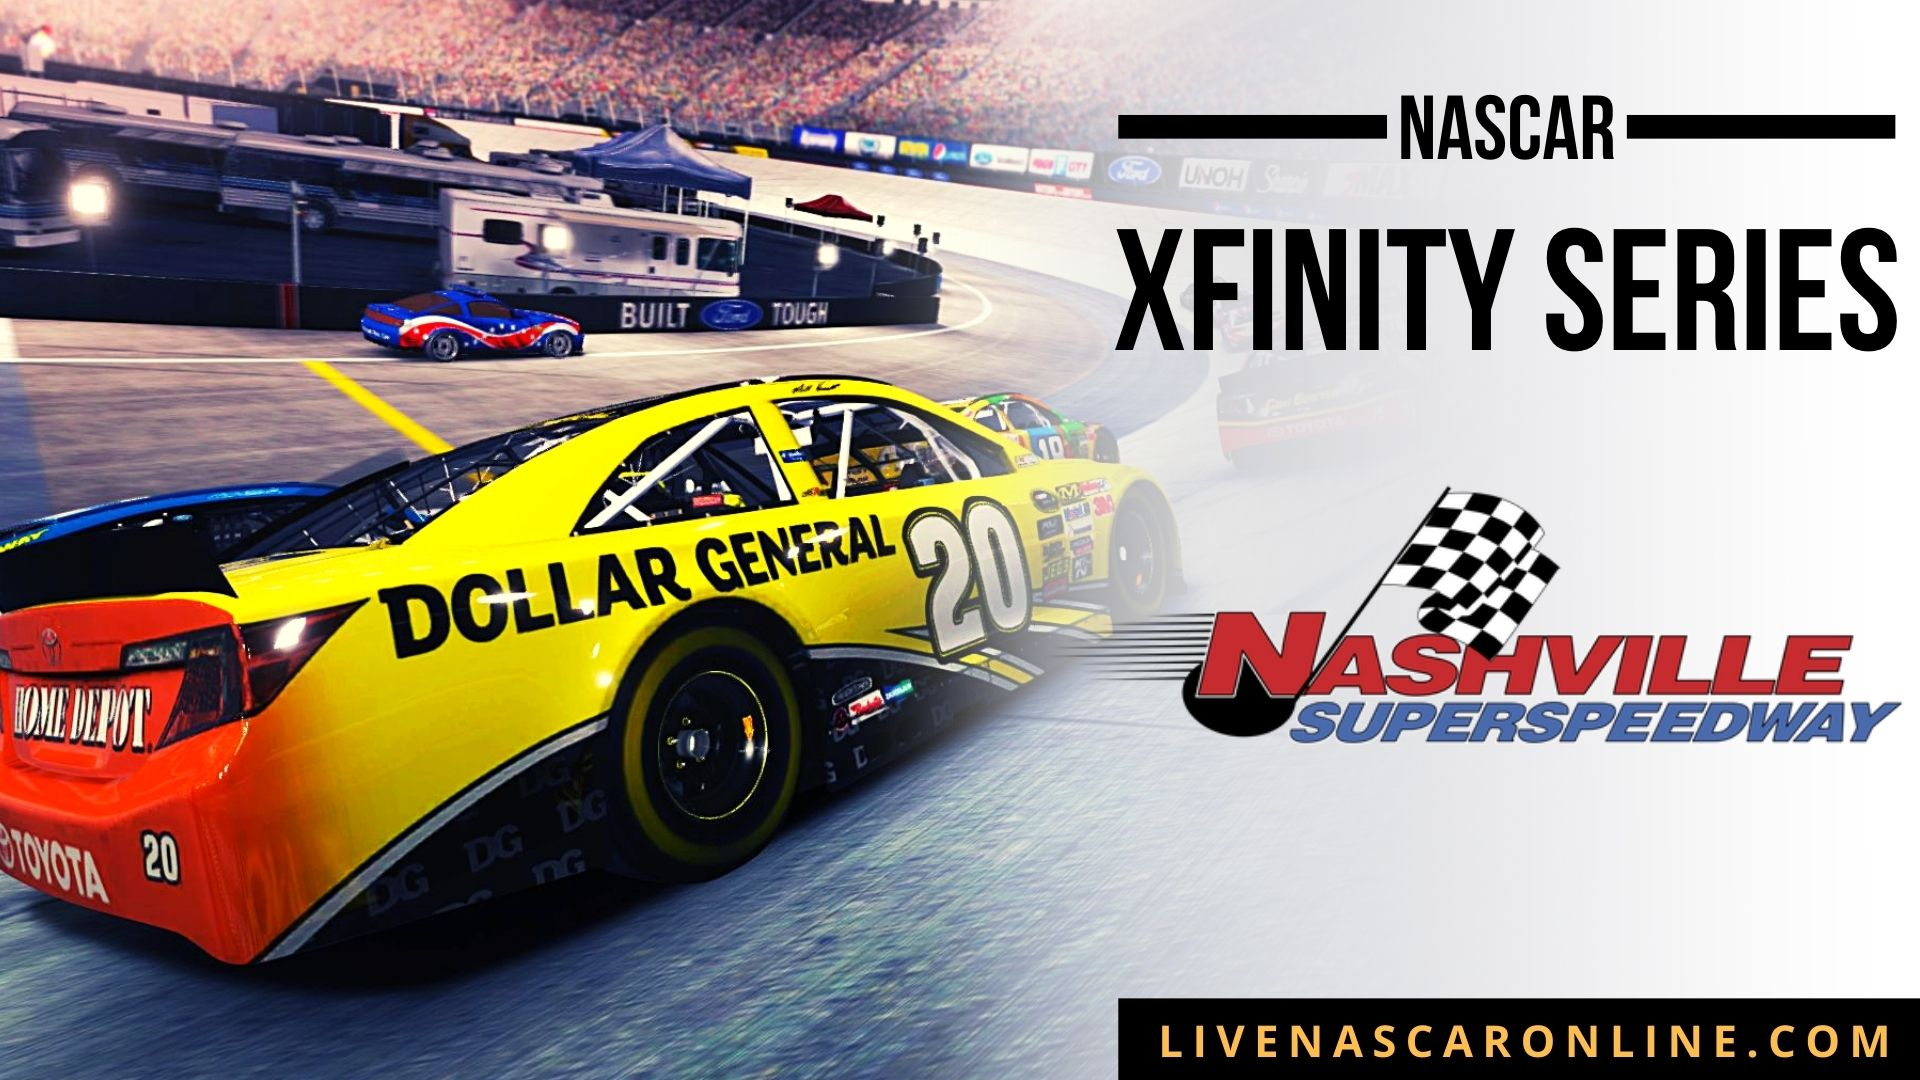 NASCAR Xfinity Race at Nashville Live Stream 2021